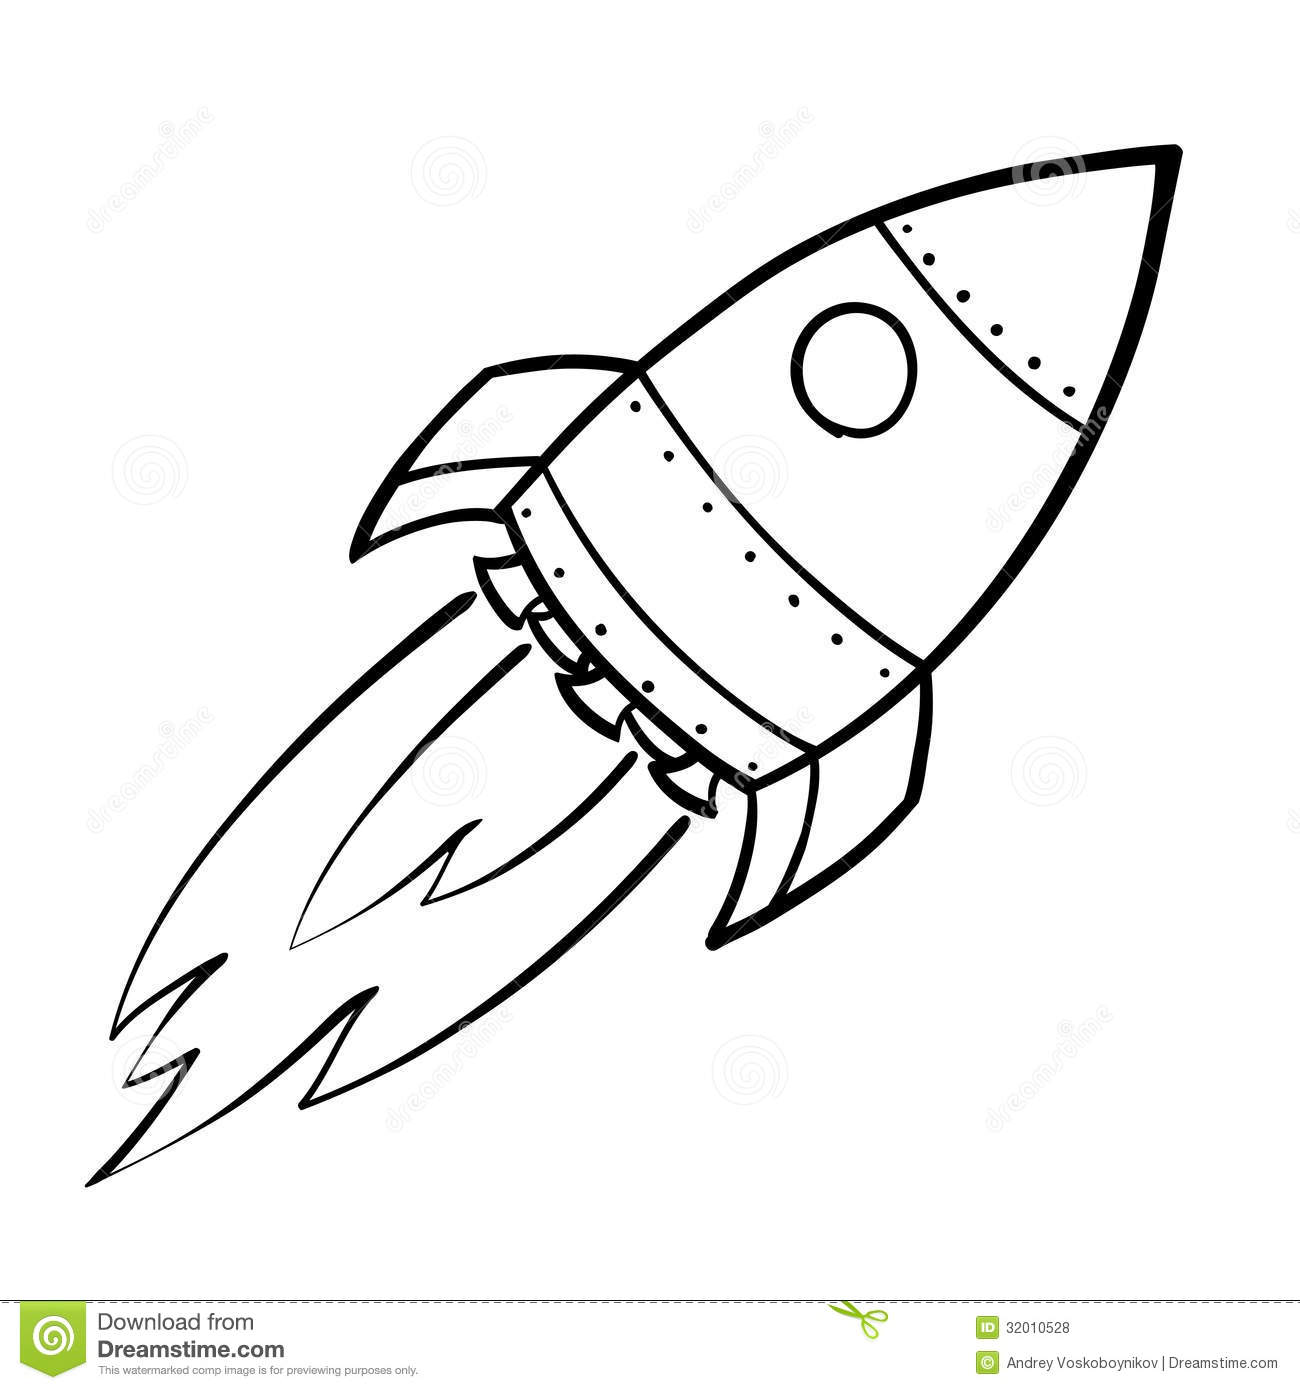 Rocket Ship Outline With Rocket Outline Clip Art : Rocket Ship.